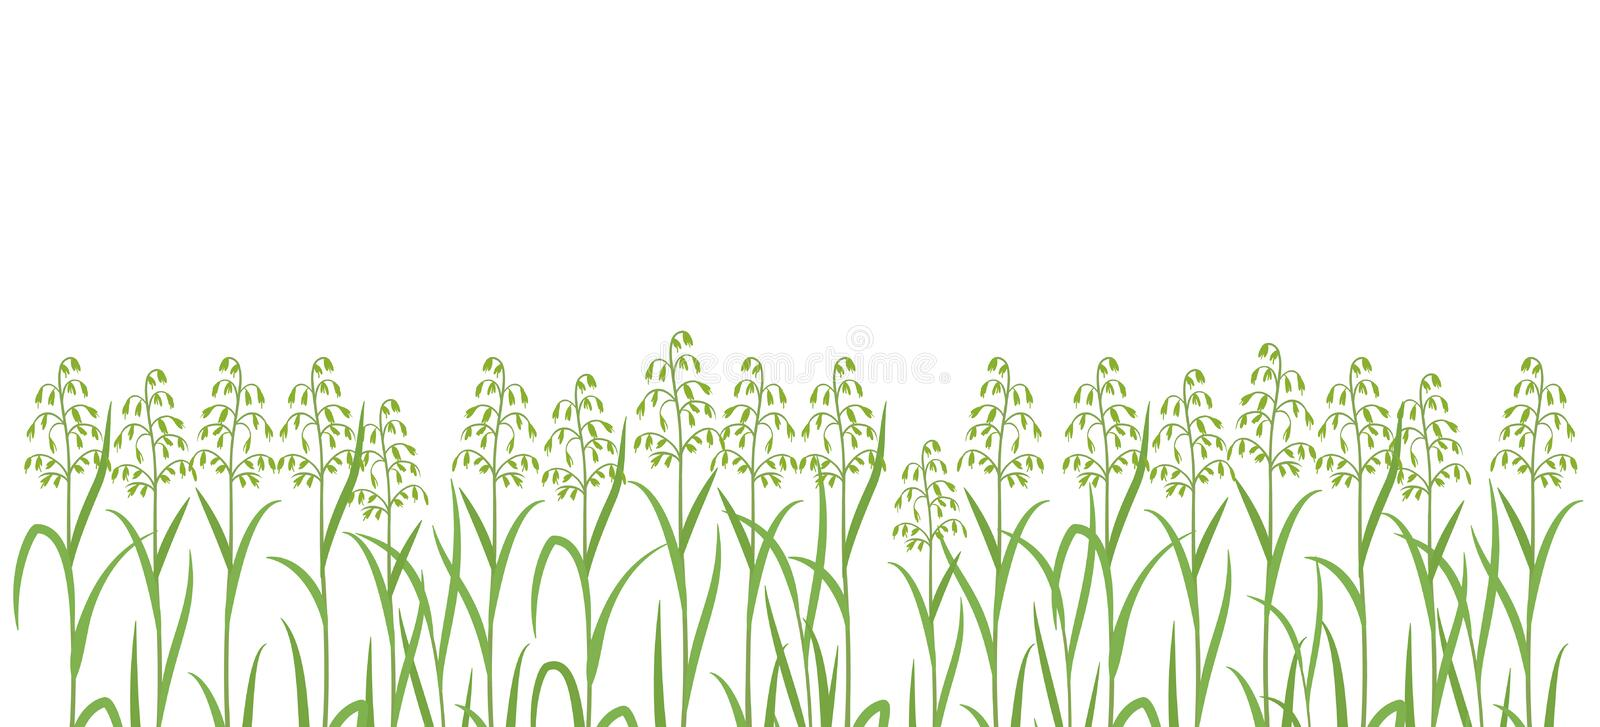 Oat plant green field. Horizontal banner. Avena sativa. Cereal grain. Place for text. Copy space. Harvest agricultural. Vector background. Agronomy clipart stock illustration